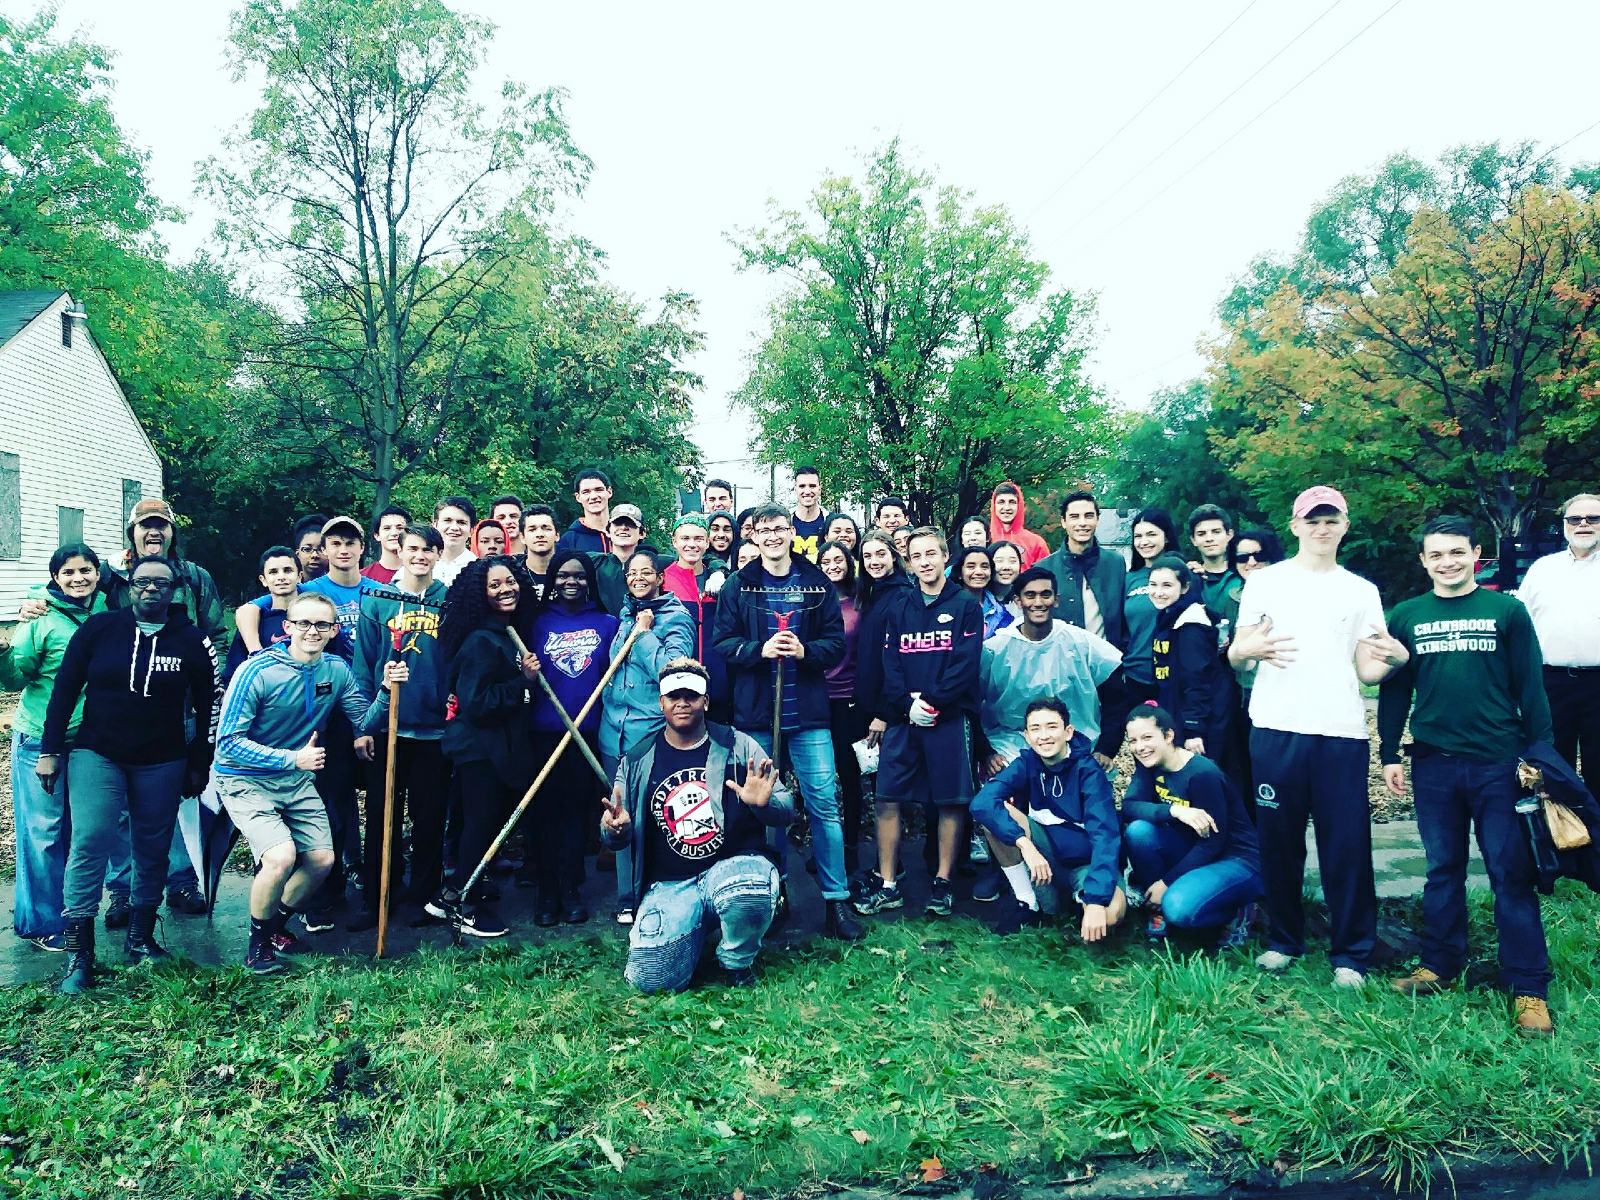 a large group of people volunteering